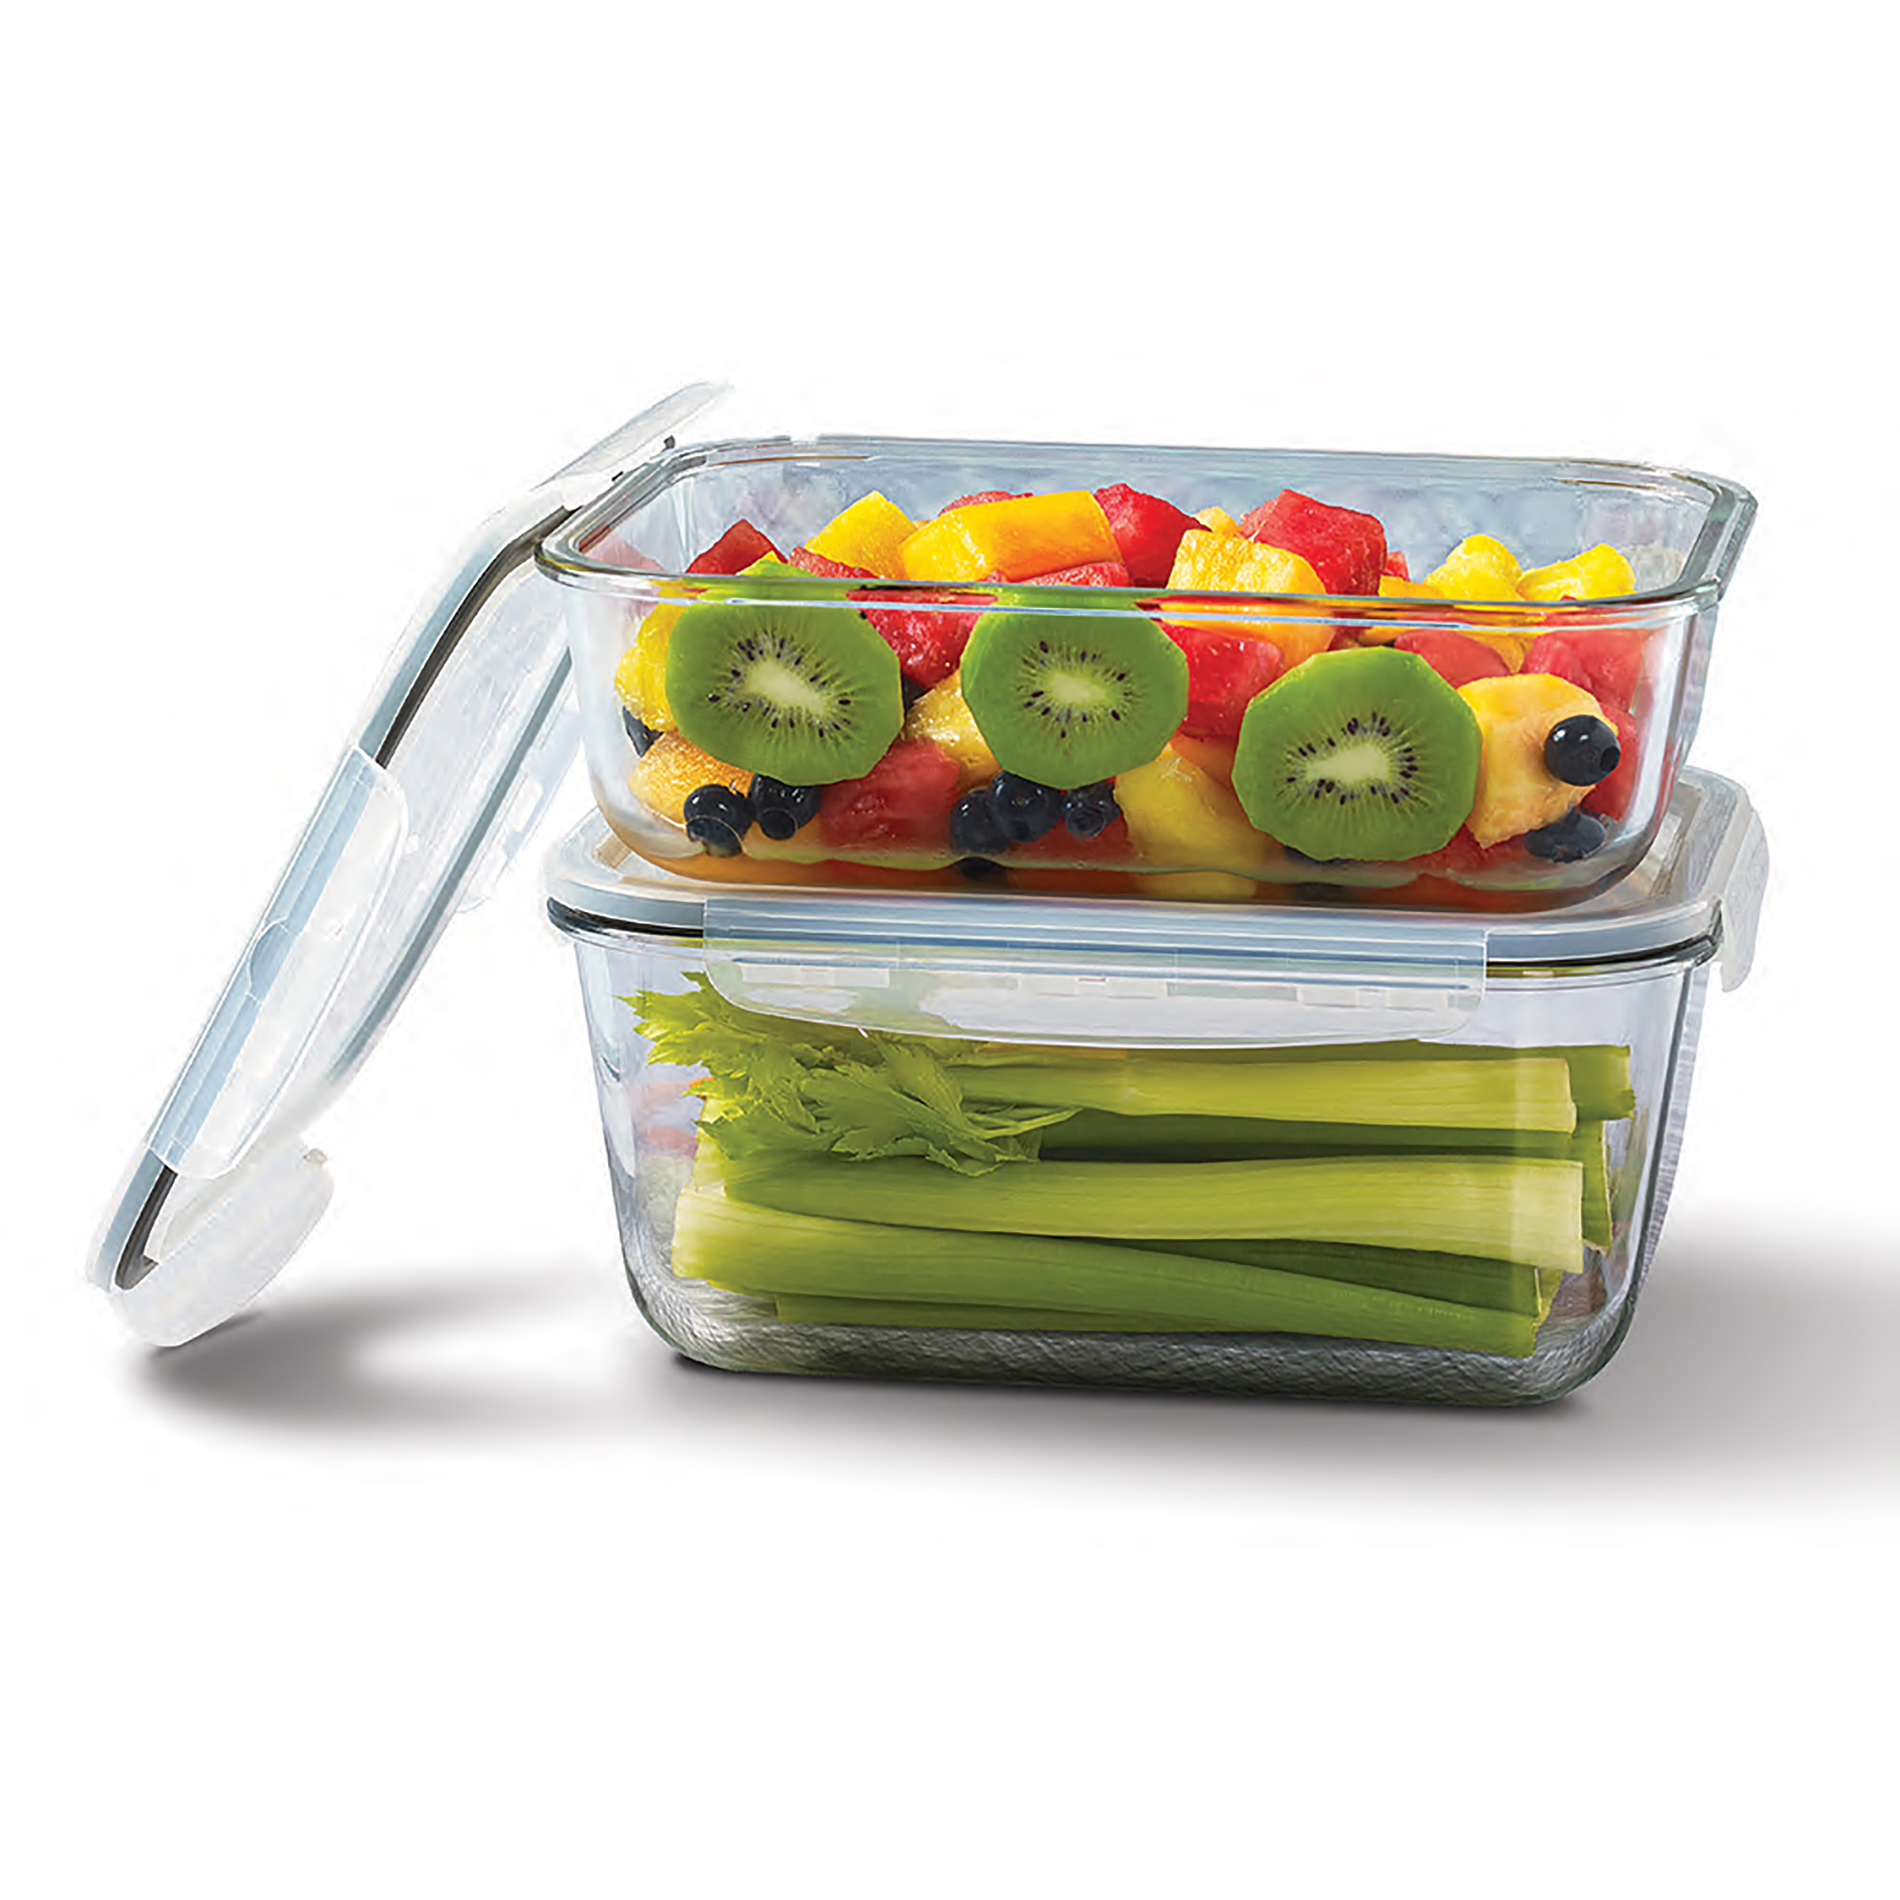 Tabletops Unlimited 4pc. Glass Storage Container Set